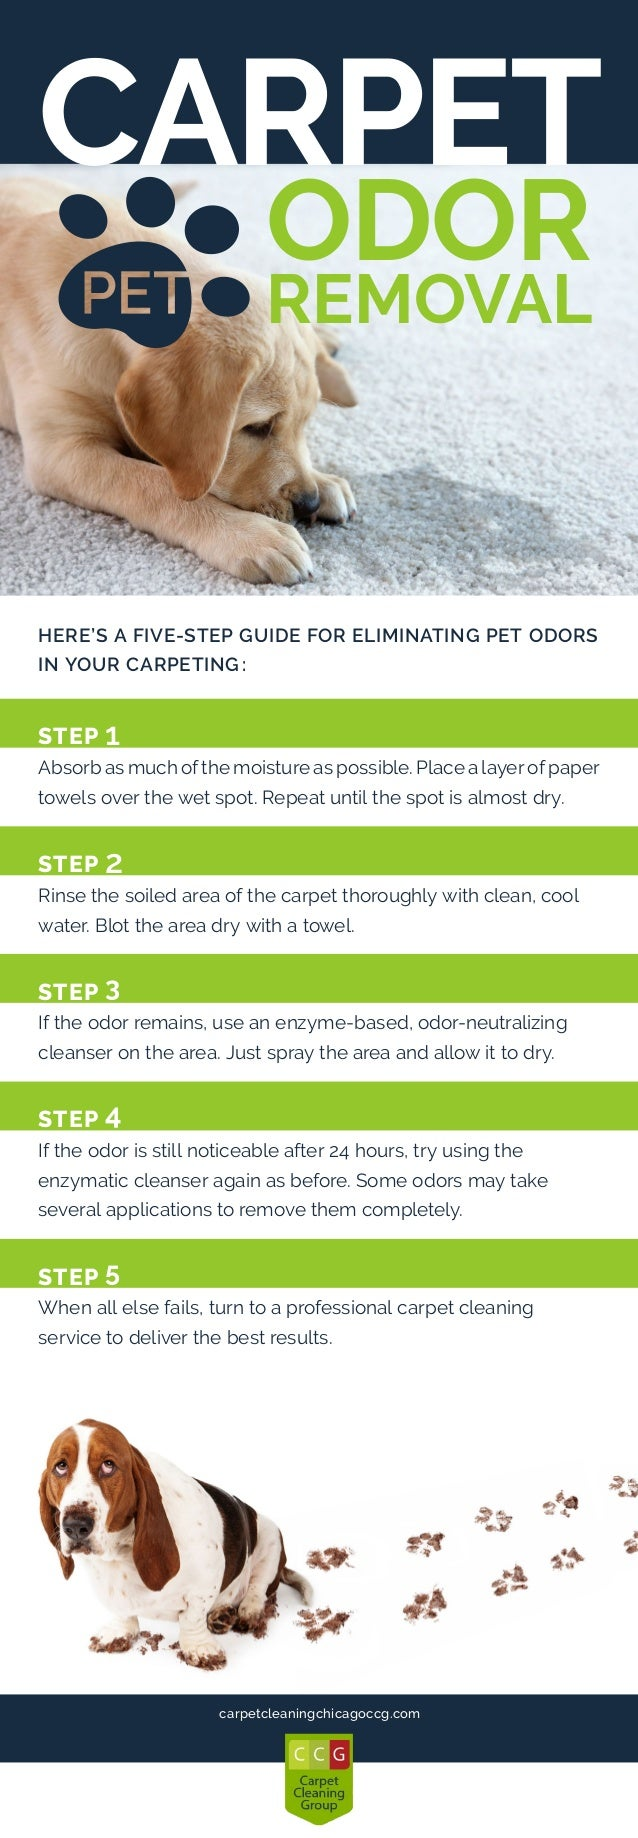 pet-odor-removal-checklist-1-638 | Carpet Pet Odor Removal Guide